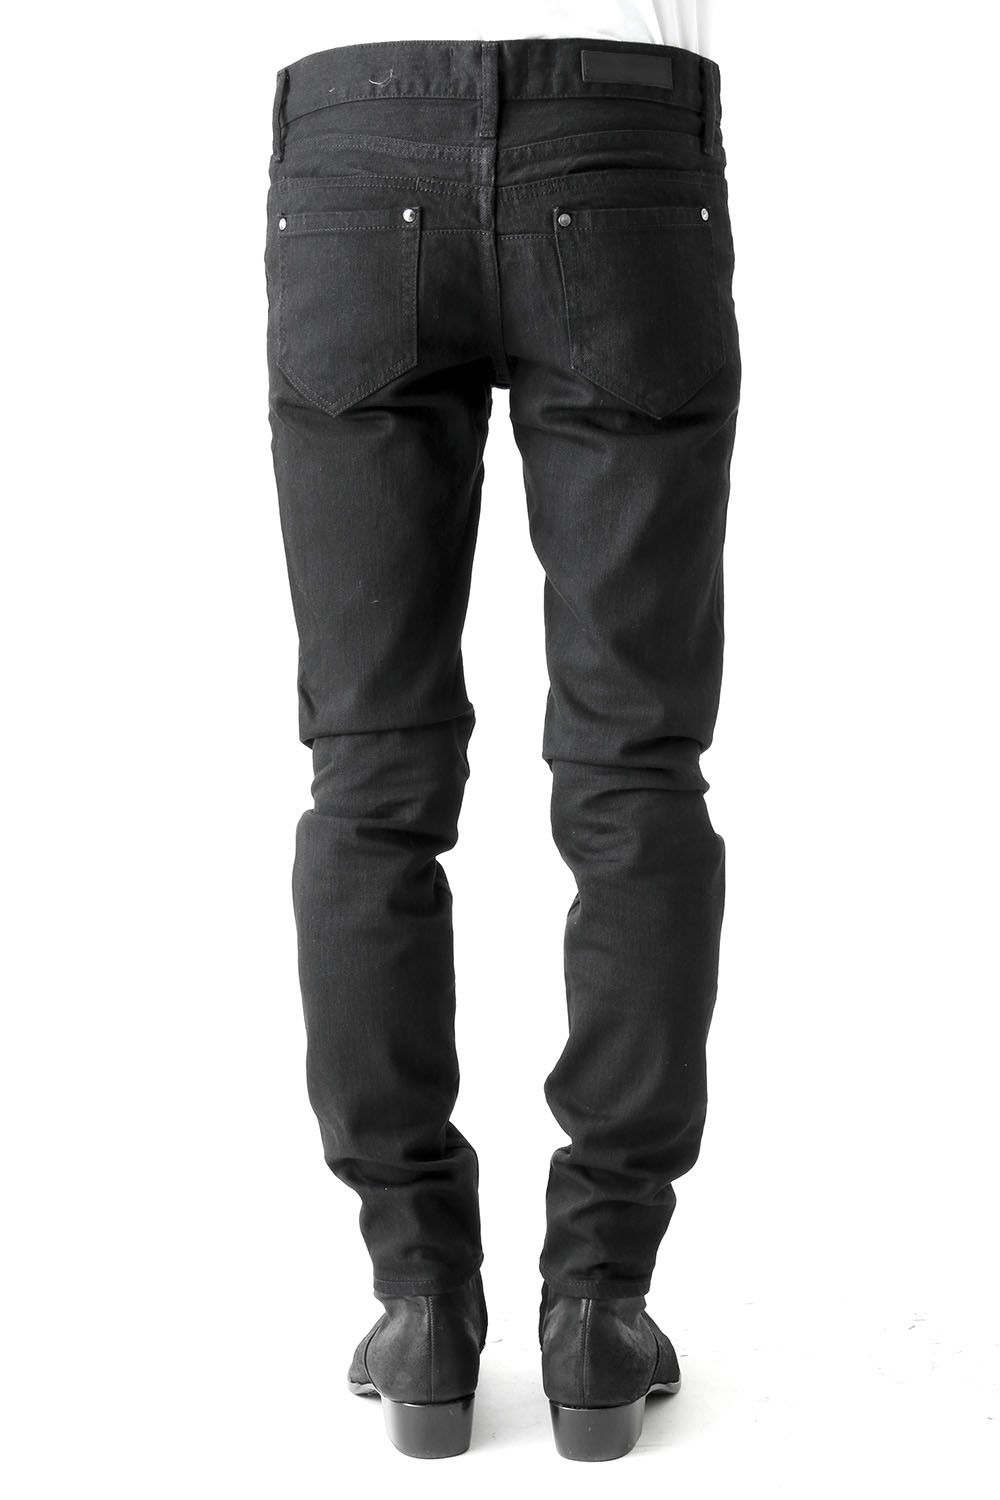 DIET BUTCHER SLIM SKIN [DBSS] 16SS 12oz Skinny Denim Pants